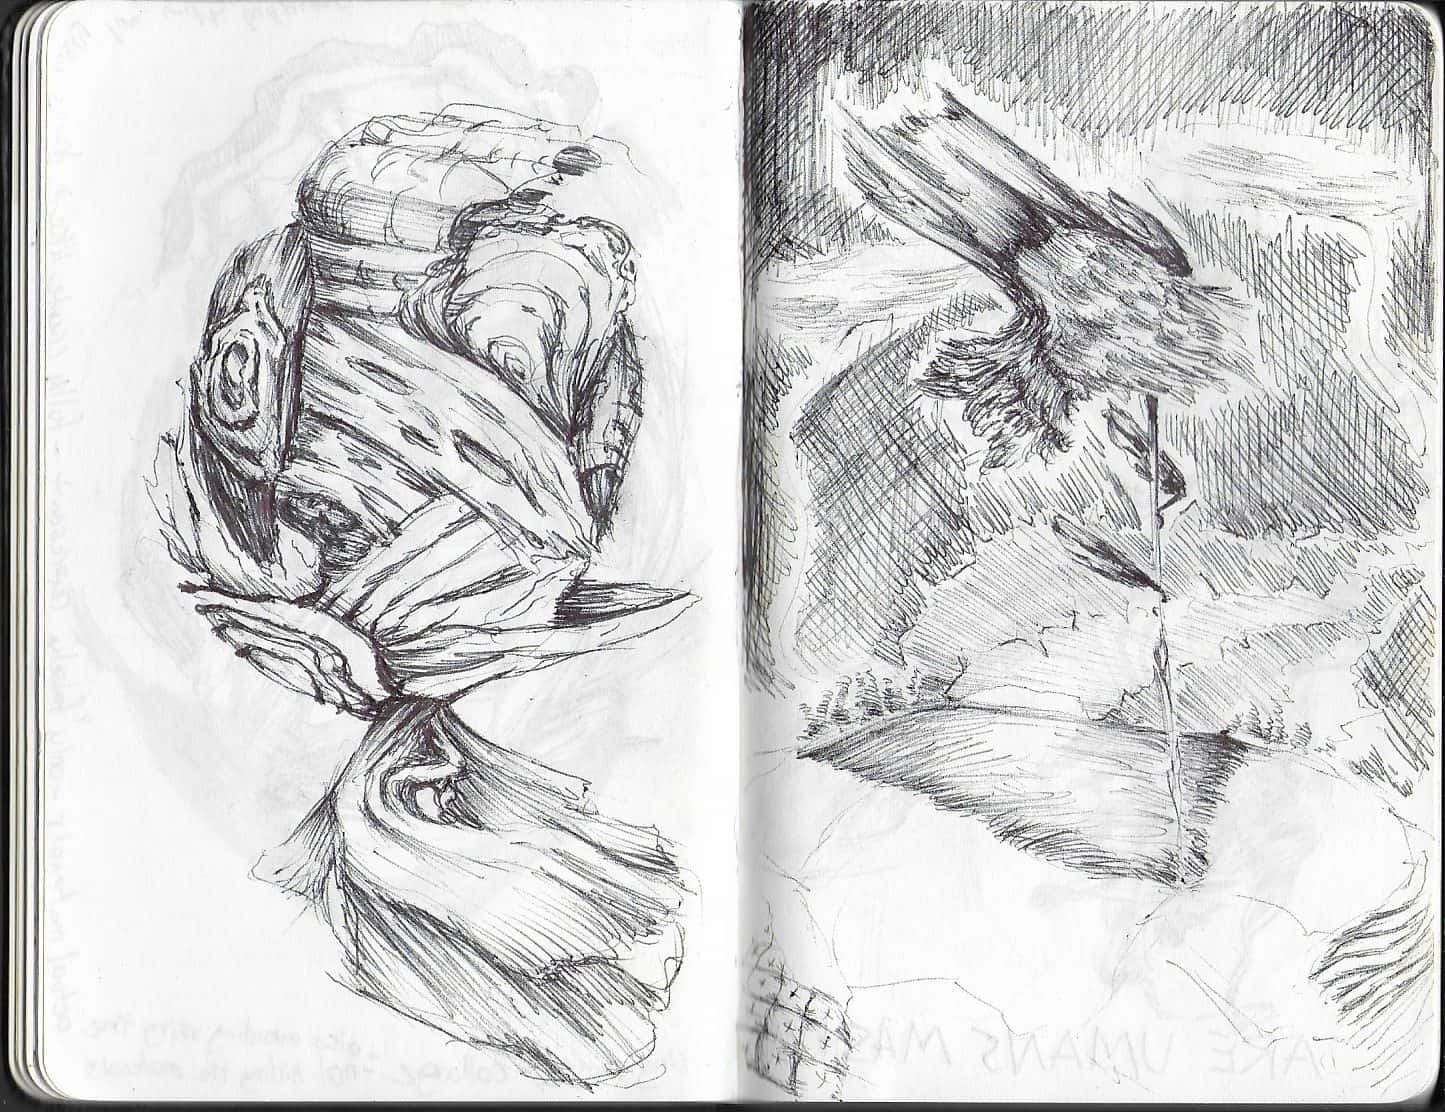 pen drawing of sketch abstract natural forms. On the right like a balancing ball of bark, on the right reminiscent of a flower in a field